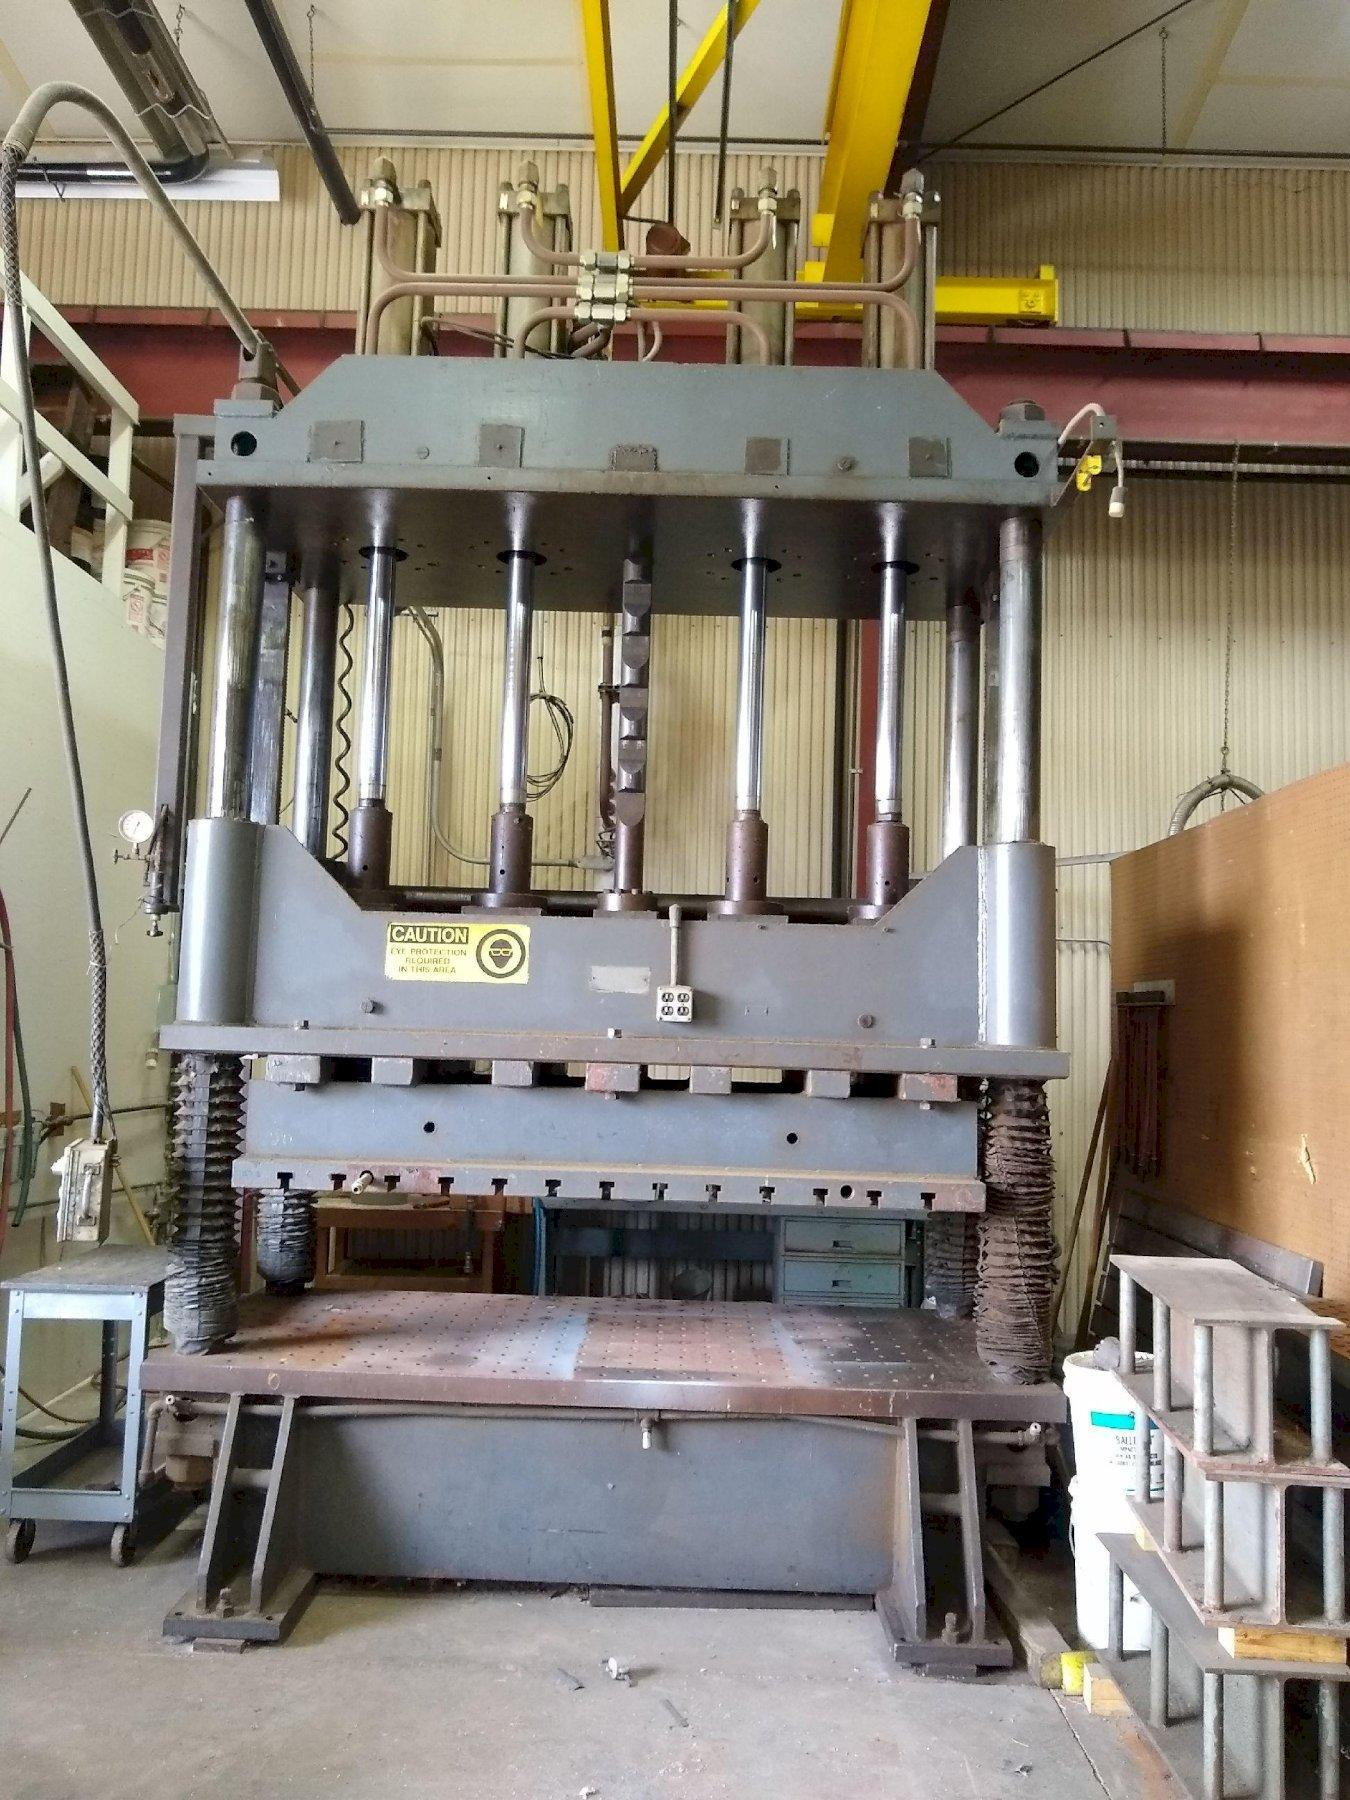 100 TON MODERN TOOL HYDRAULIC 4 POST PRESS. STOCK # 0848620